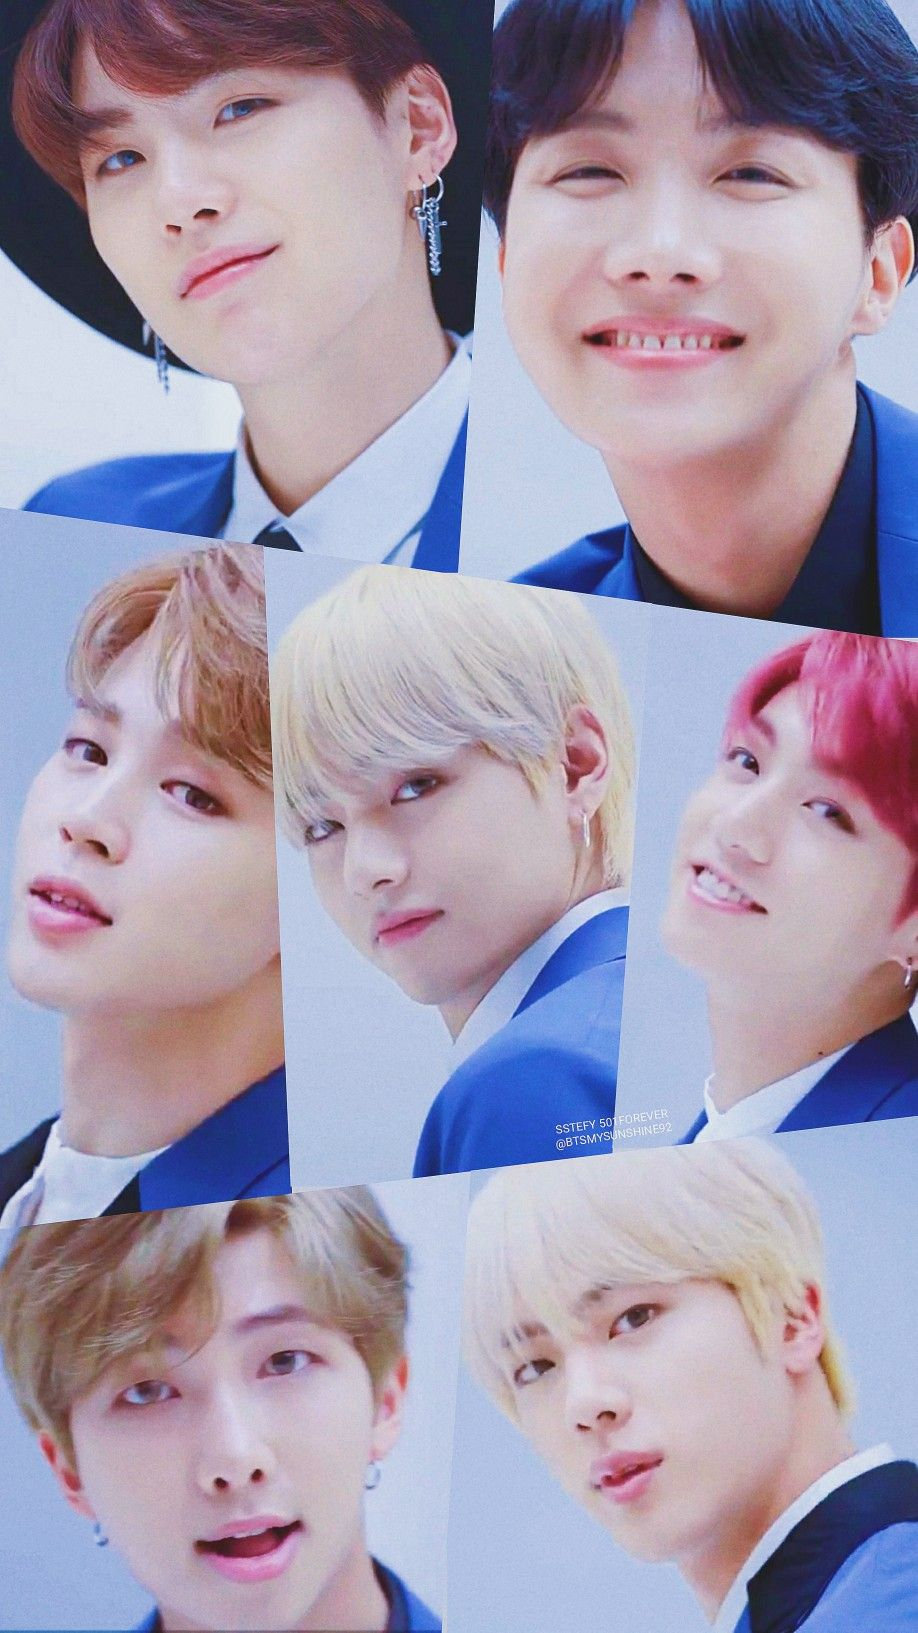 BTS x LOTTE DUTY FREE Lockscreen // wallpaper ♥️ #btswallpaper